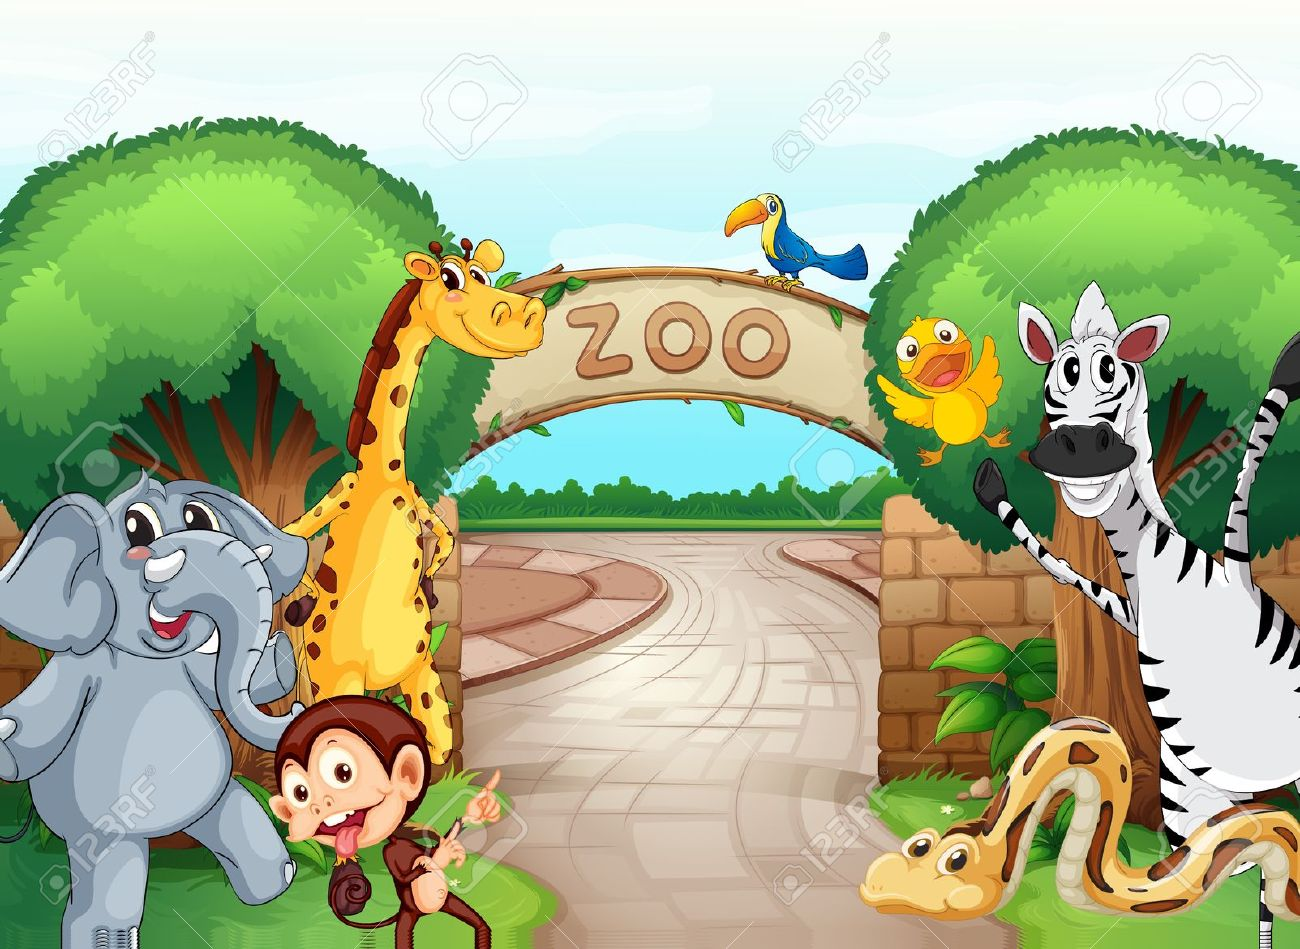 Zoo clipart #9, Download drawings